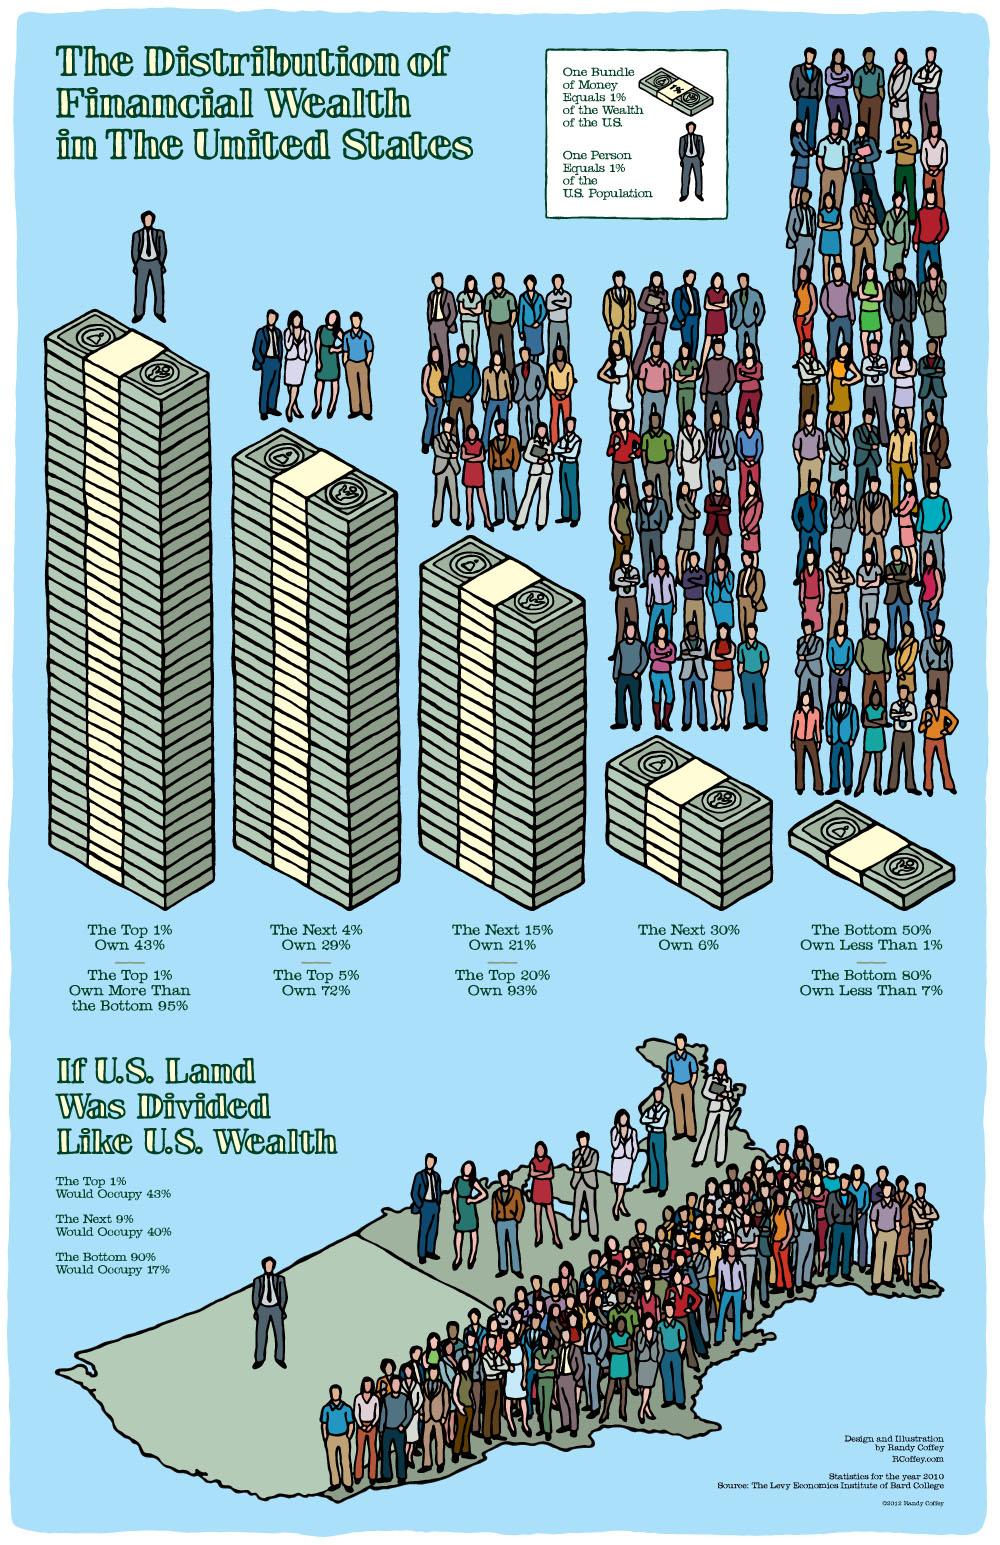 Distribution of Financial Wealth